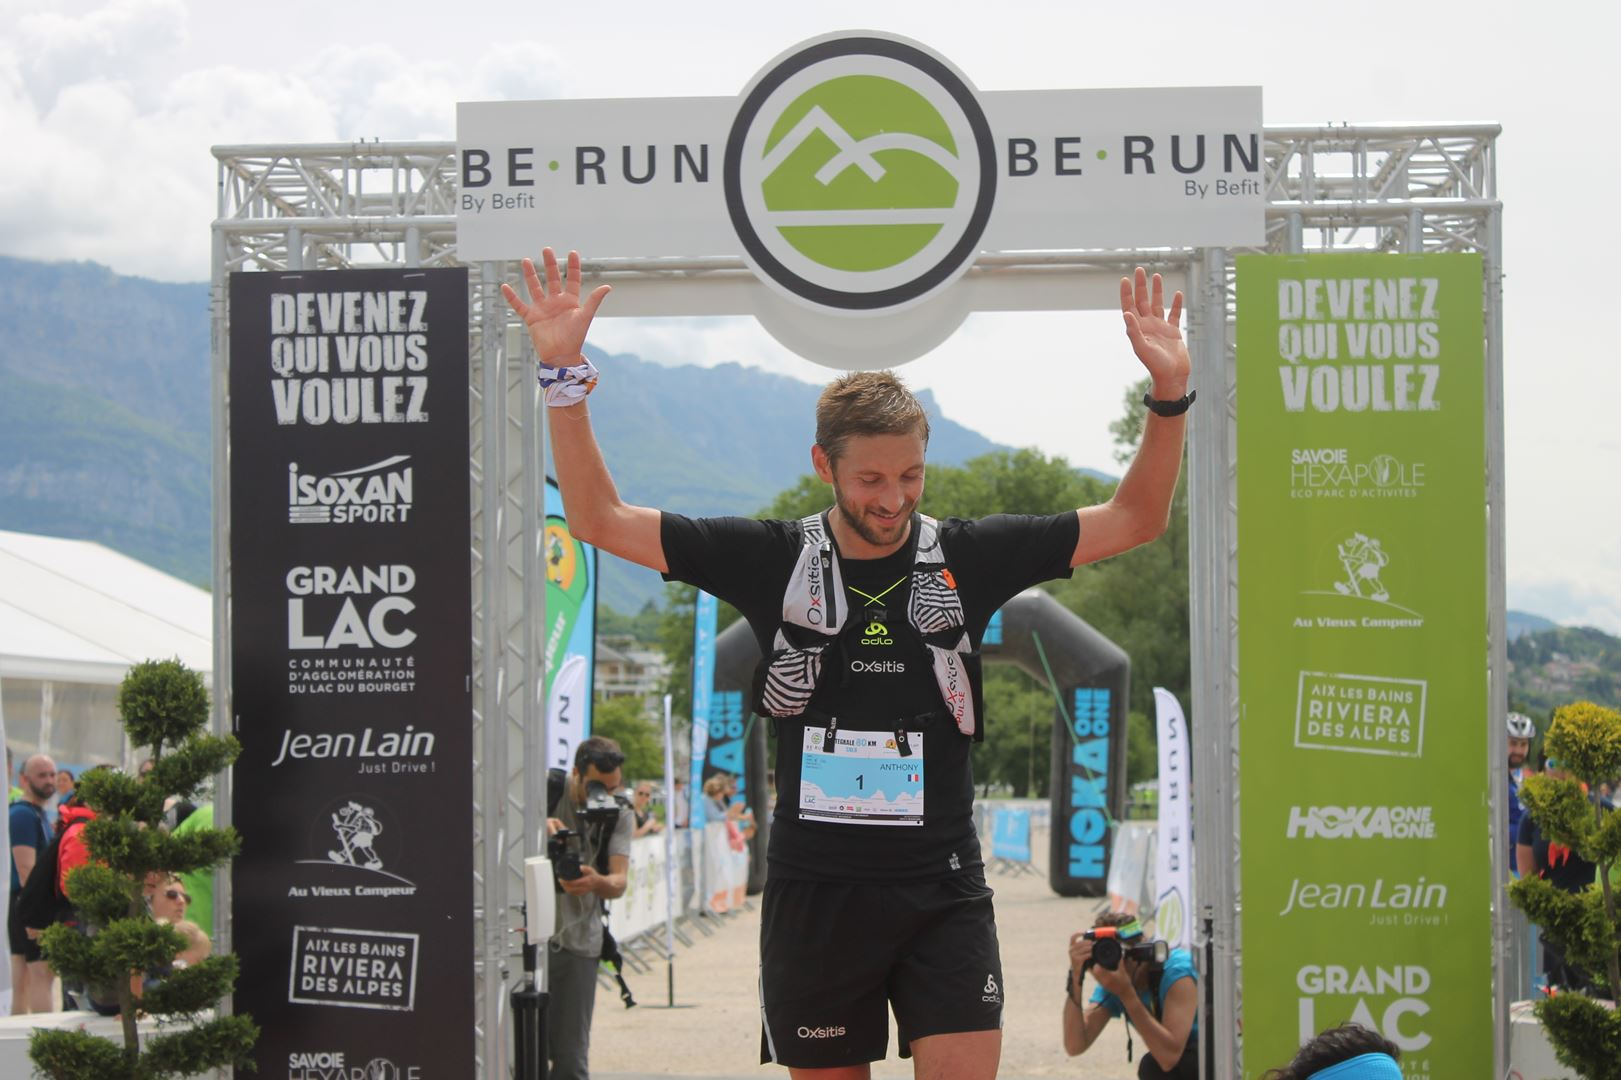 anthony gay - RESULTATS ET PHOTOS DU TRAIL BE RUN - DUINGT (74)-AIX LES BAINS (73) - 14-05-2017